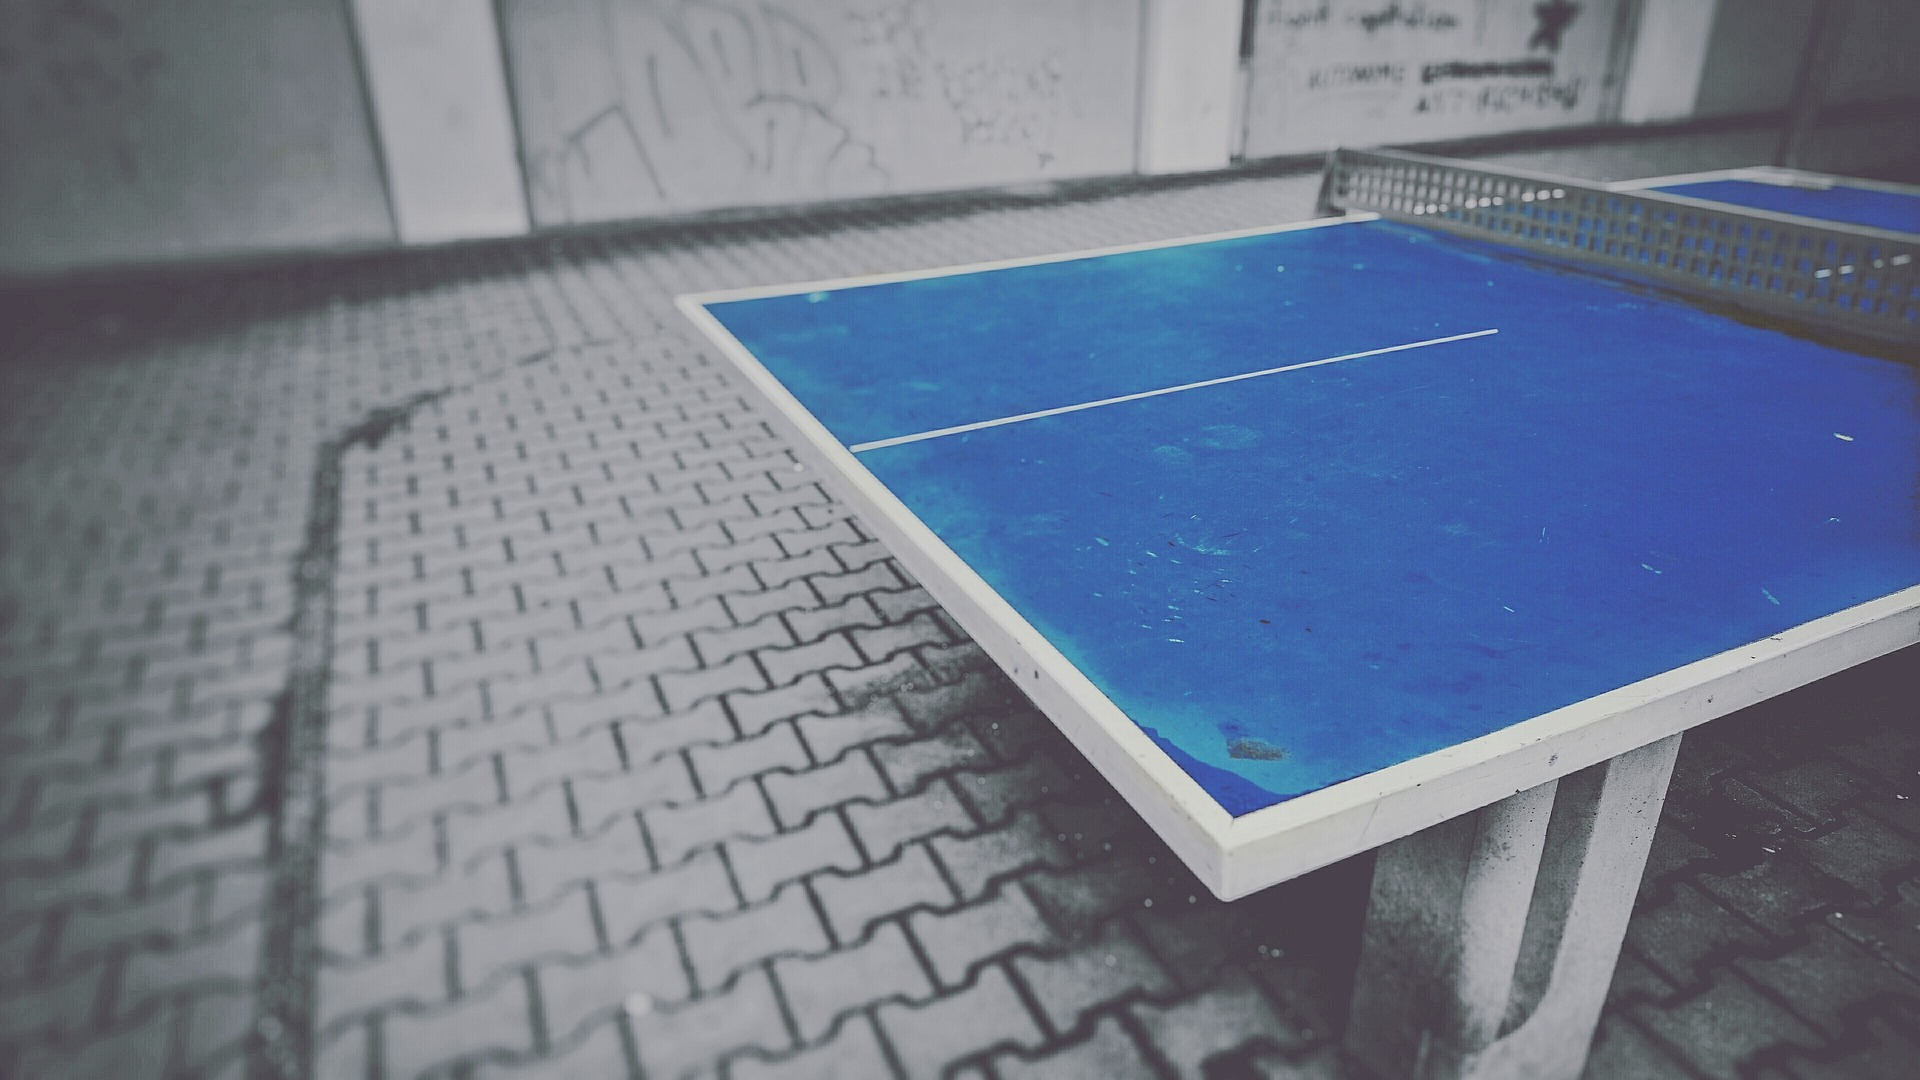 table-tennis-1648005_1920.jpg